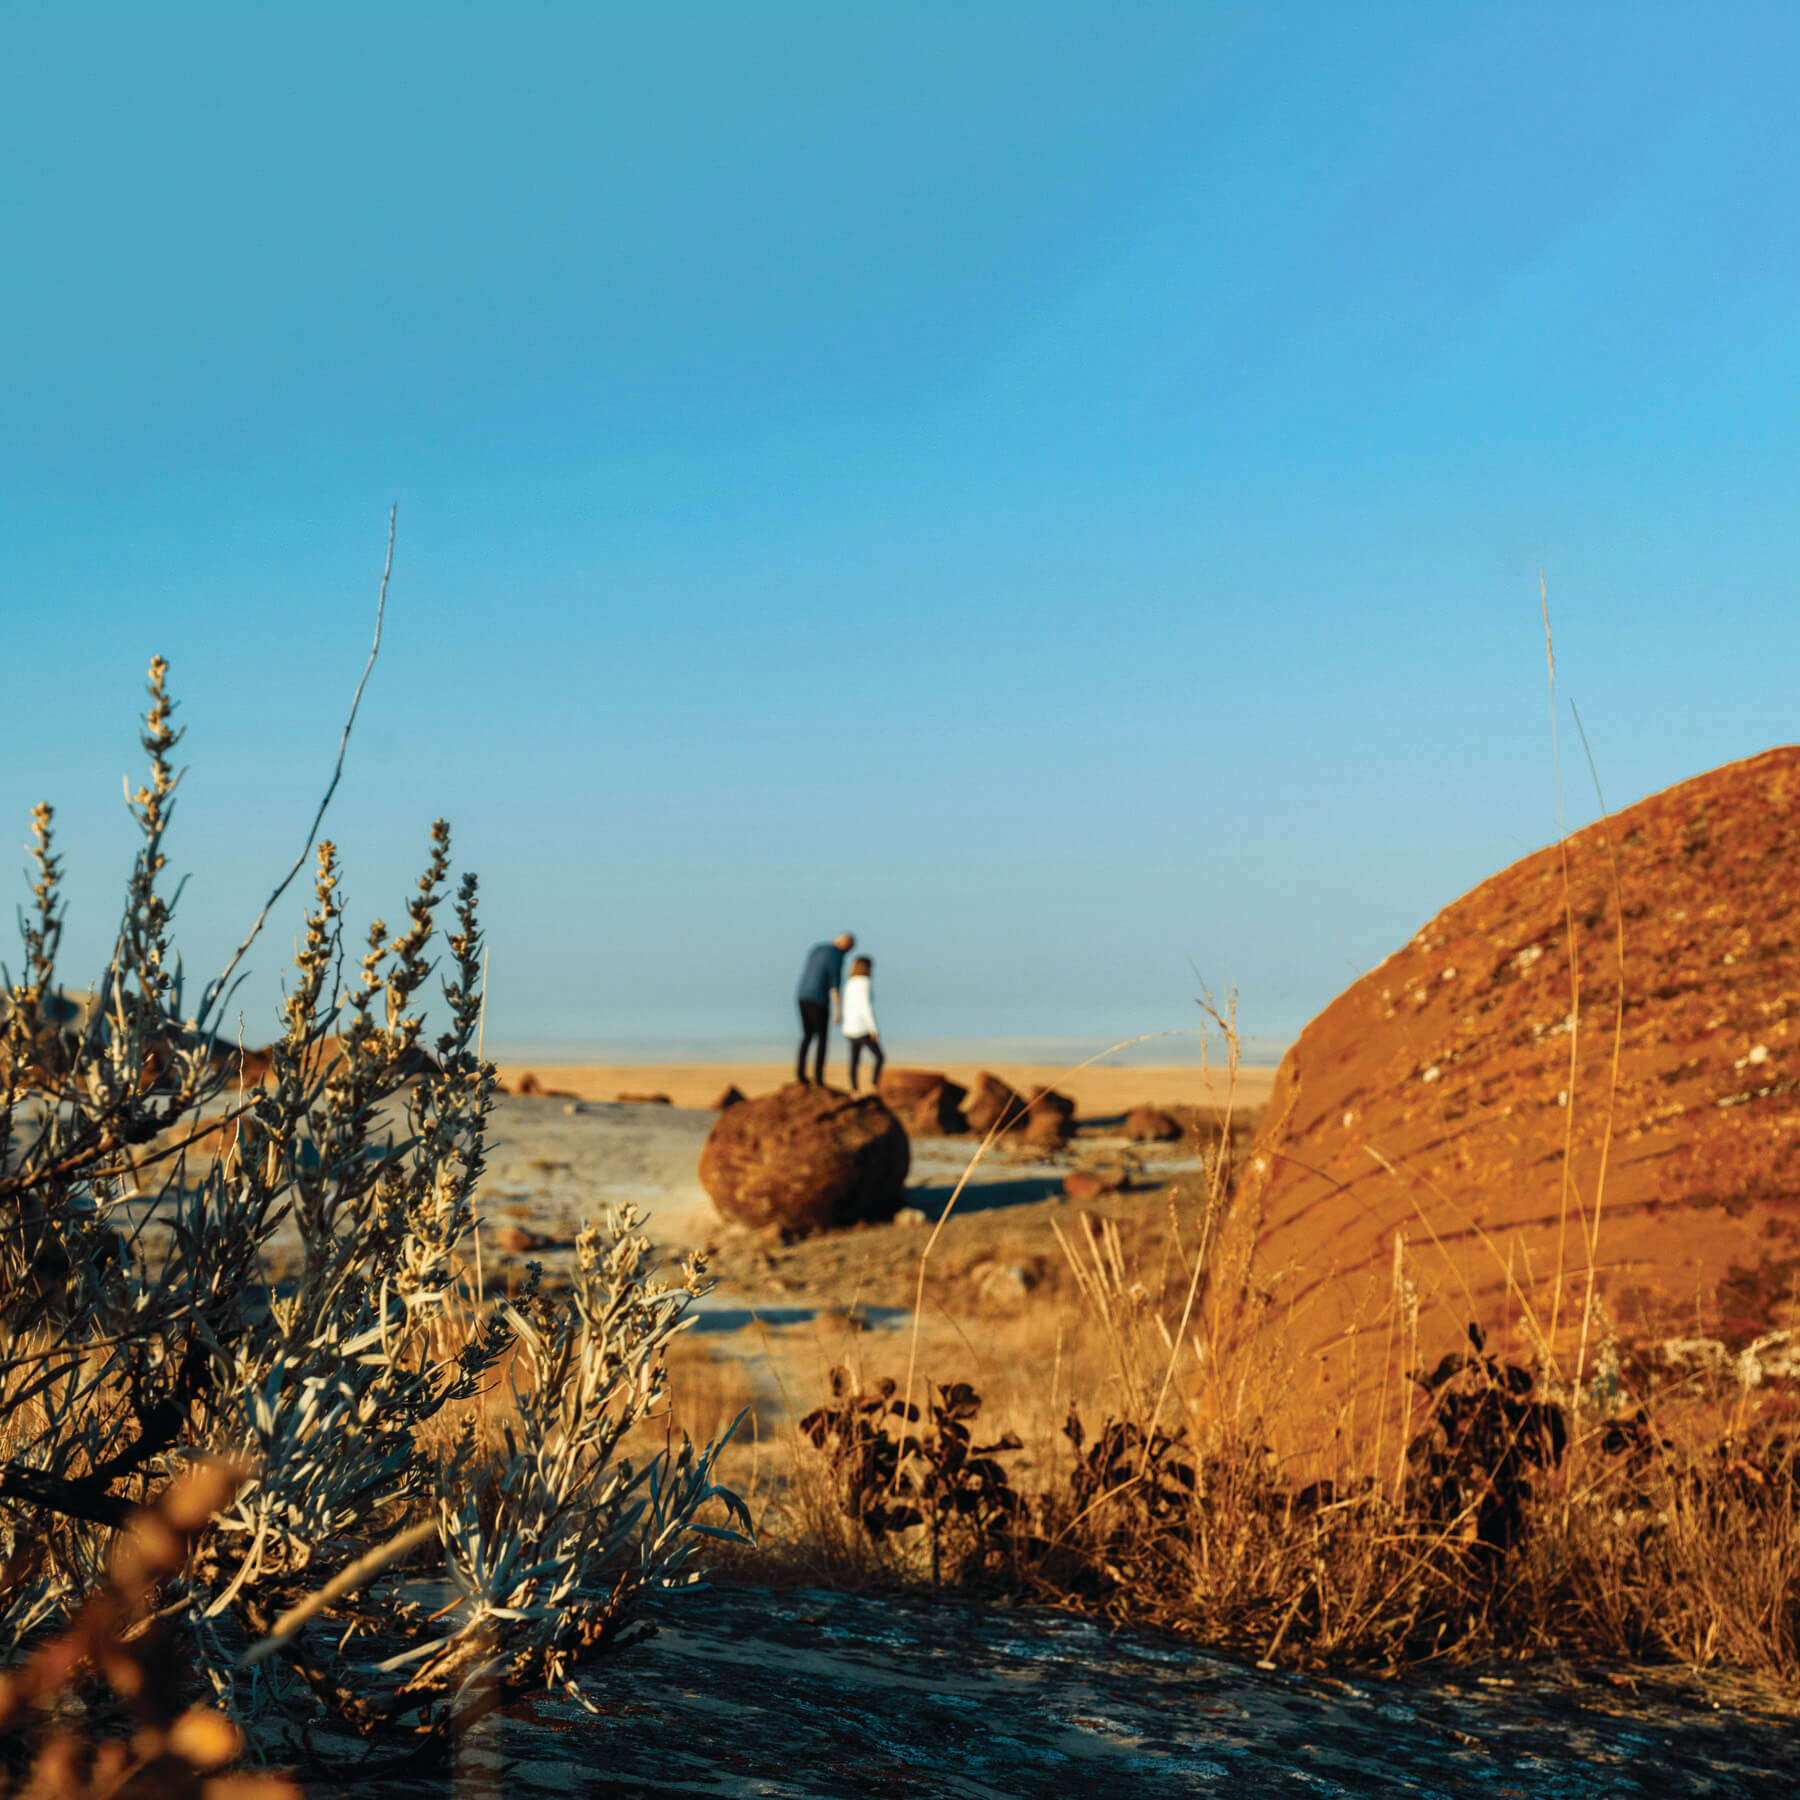 Red Rock Coulee offers badlands, hard sandstone capped hoodoos and large, round, red boulders.